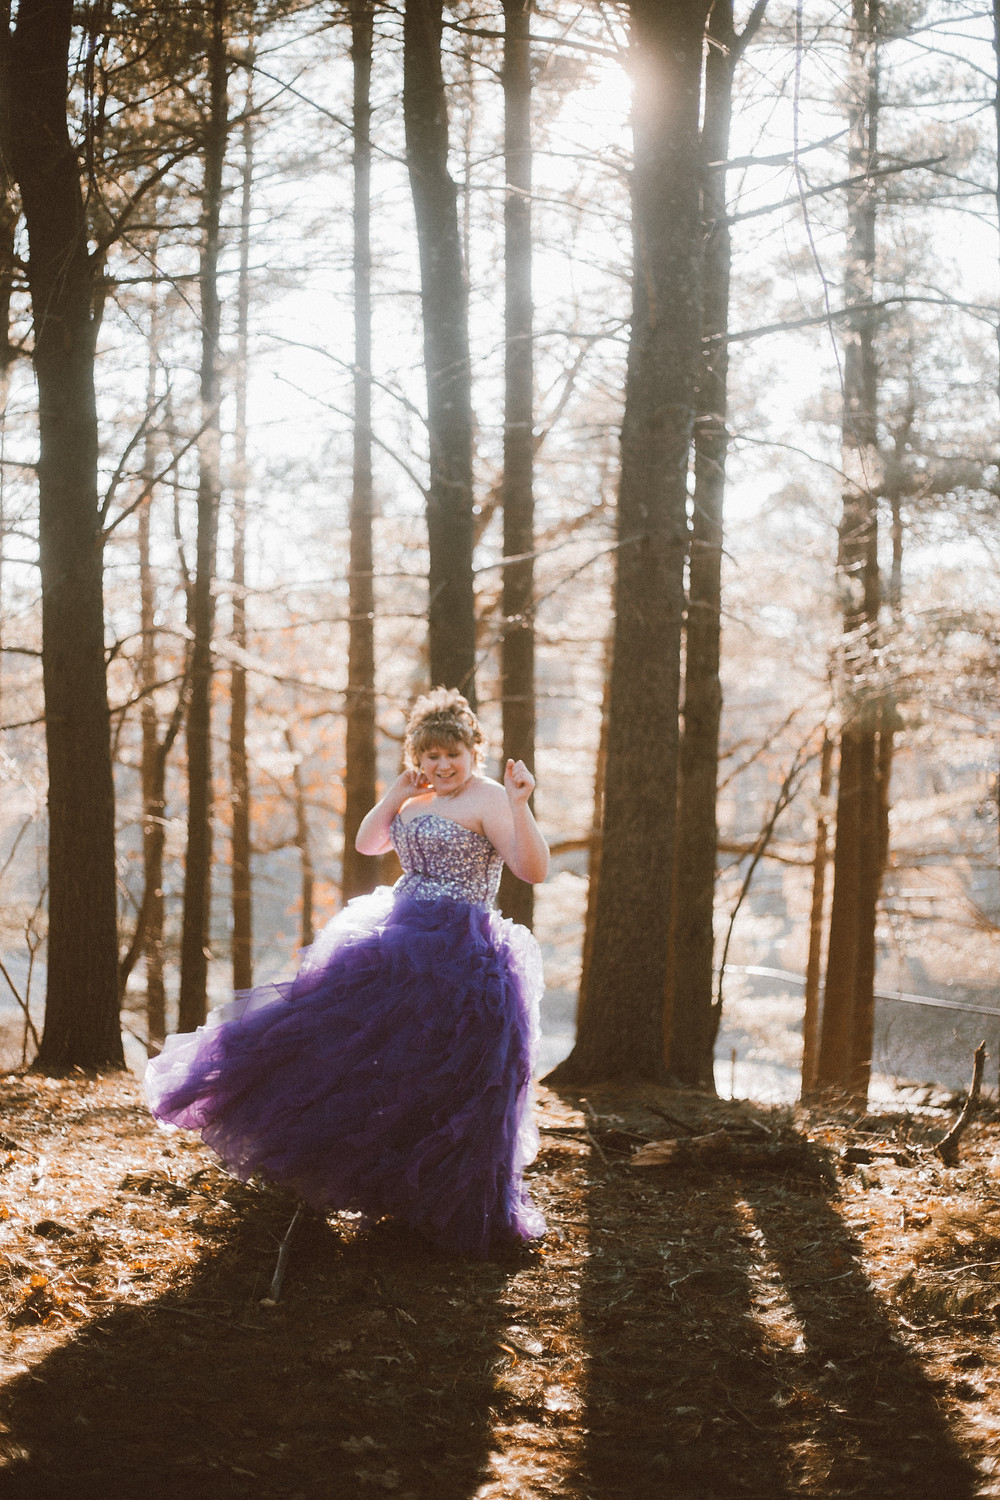 Teenage girl twirls in her prom dress in the woods. Lifestyle photography by Anna Gutermuth.